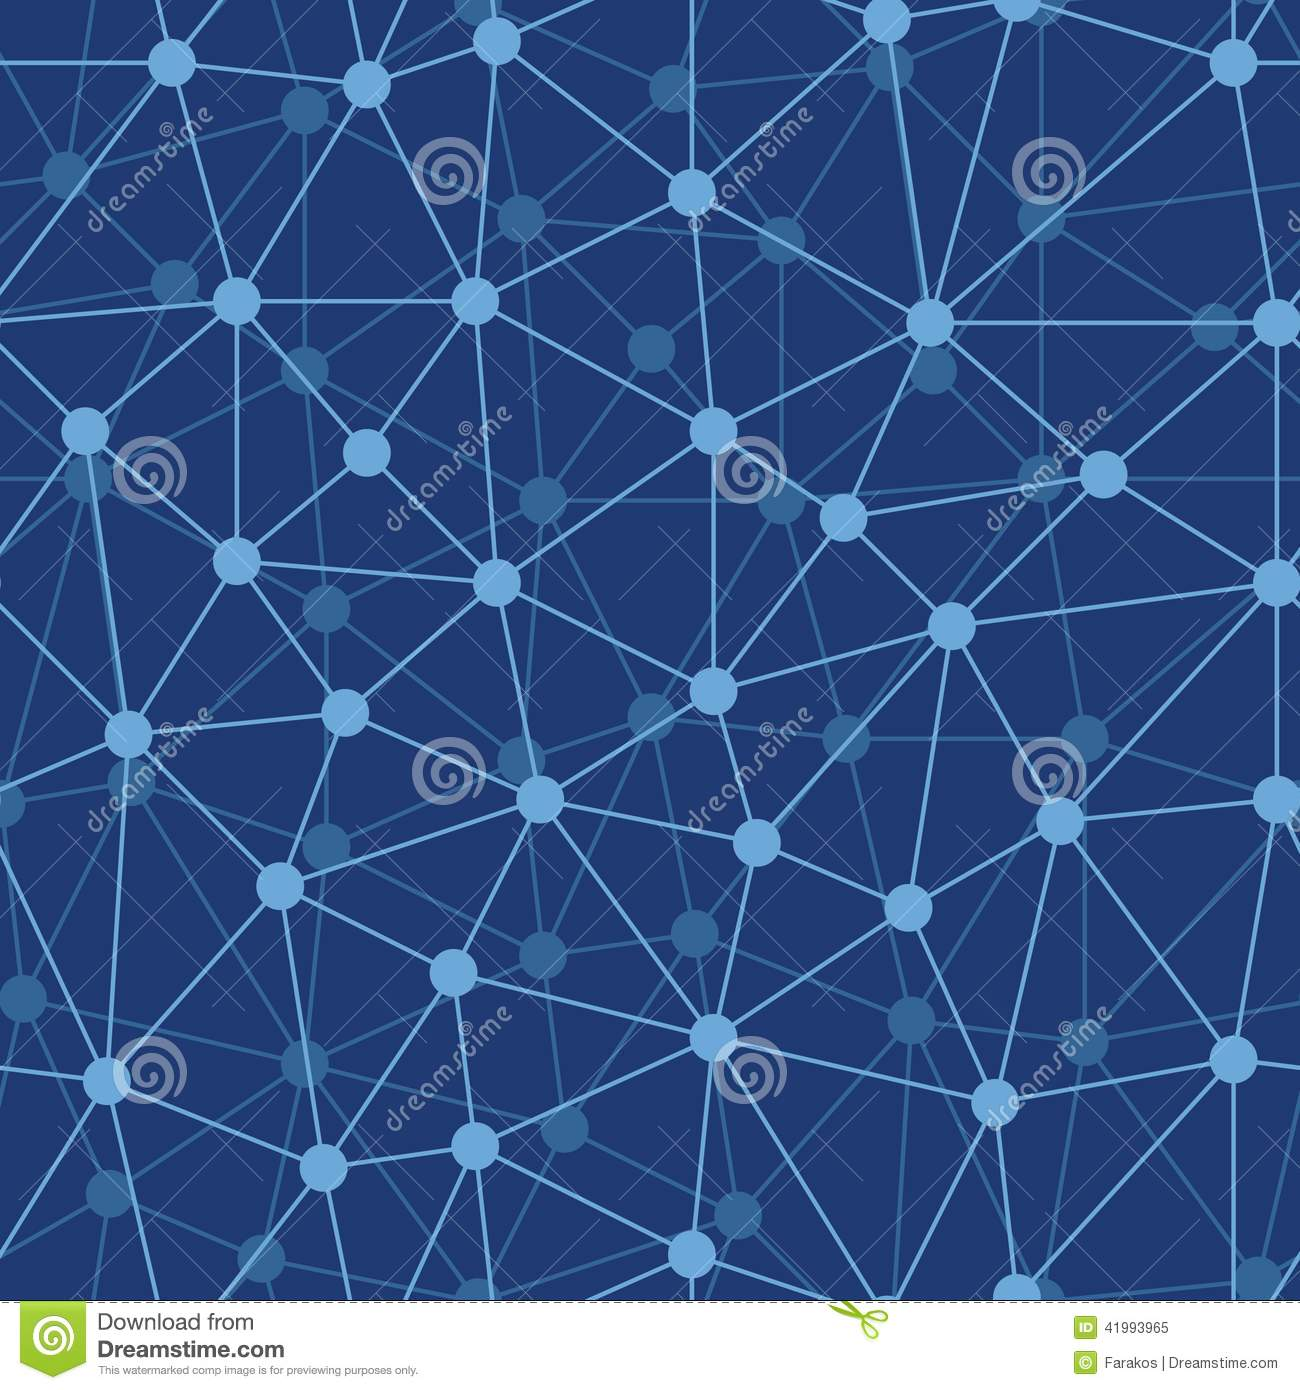 Moroccan geometric pattern royalty free stock photos image 13547078 - Web Made Of Dot Nodes With Connections Seamless Vector Pattern Blue